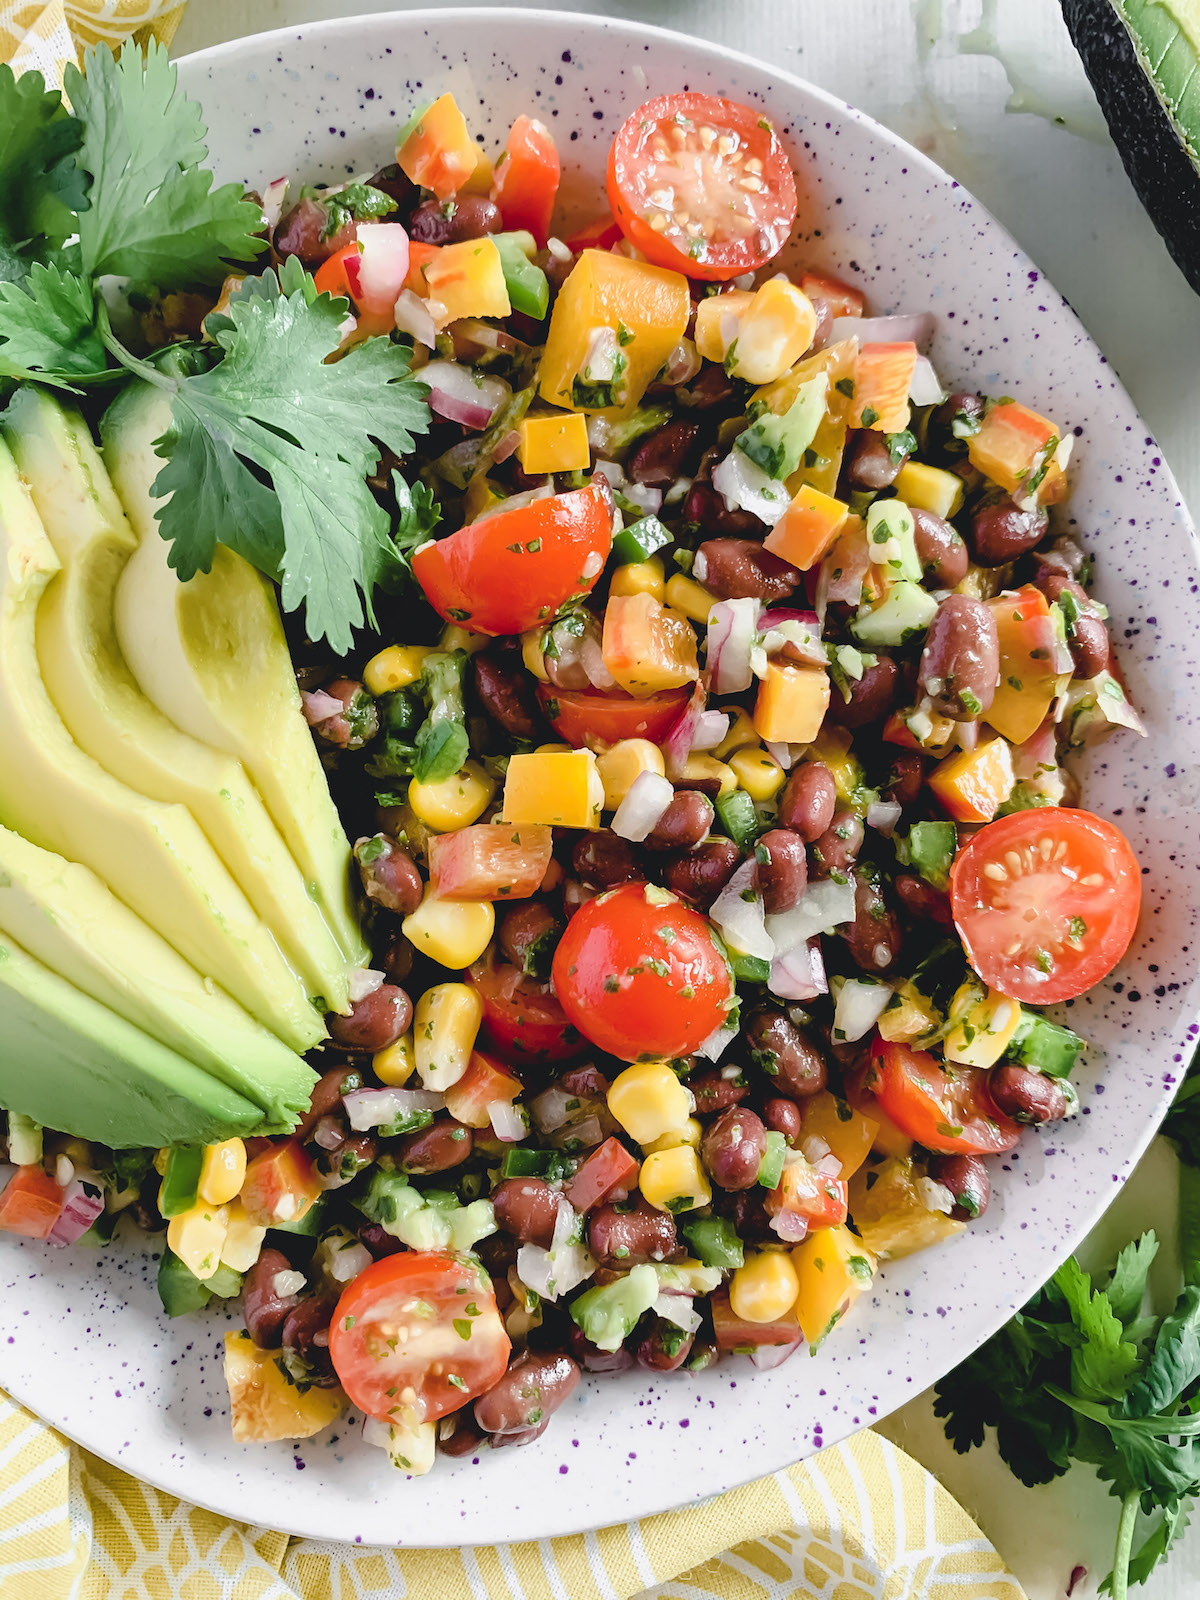 Fiesta salad with avocado slices in a speckled bowl.